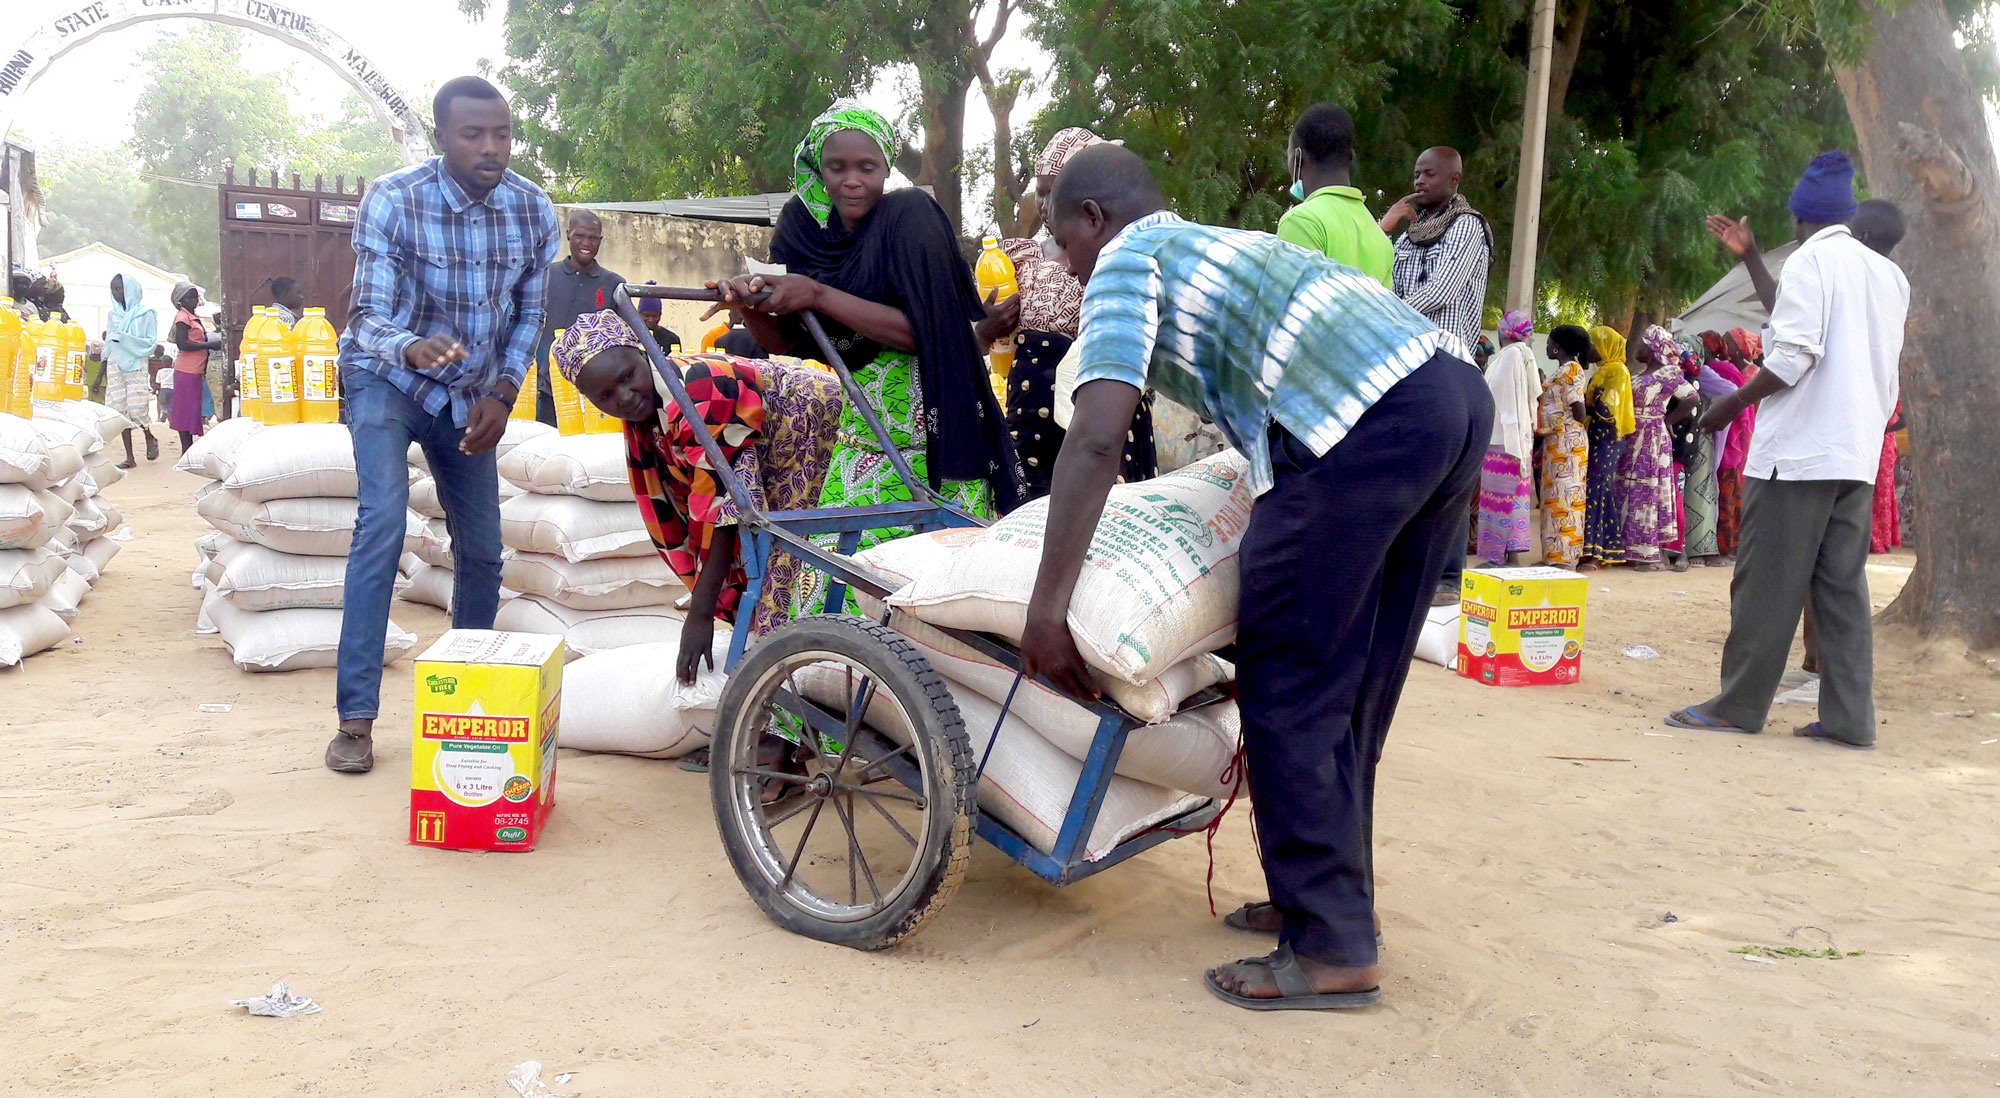 Christian Aid volunteers help to load a truck of supplies for internally displaced people in Nigeria